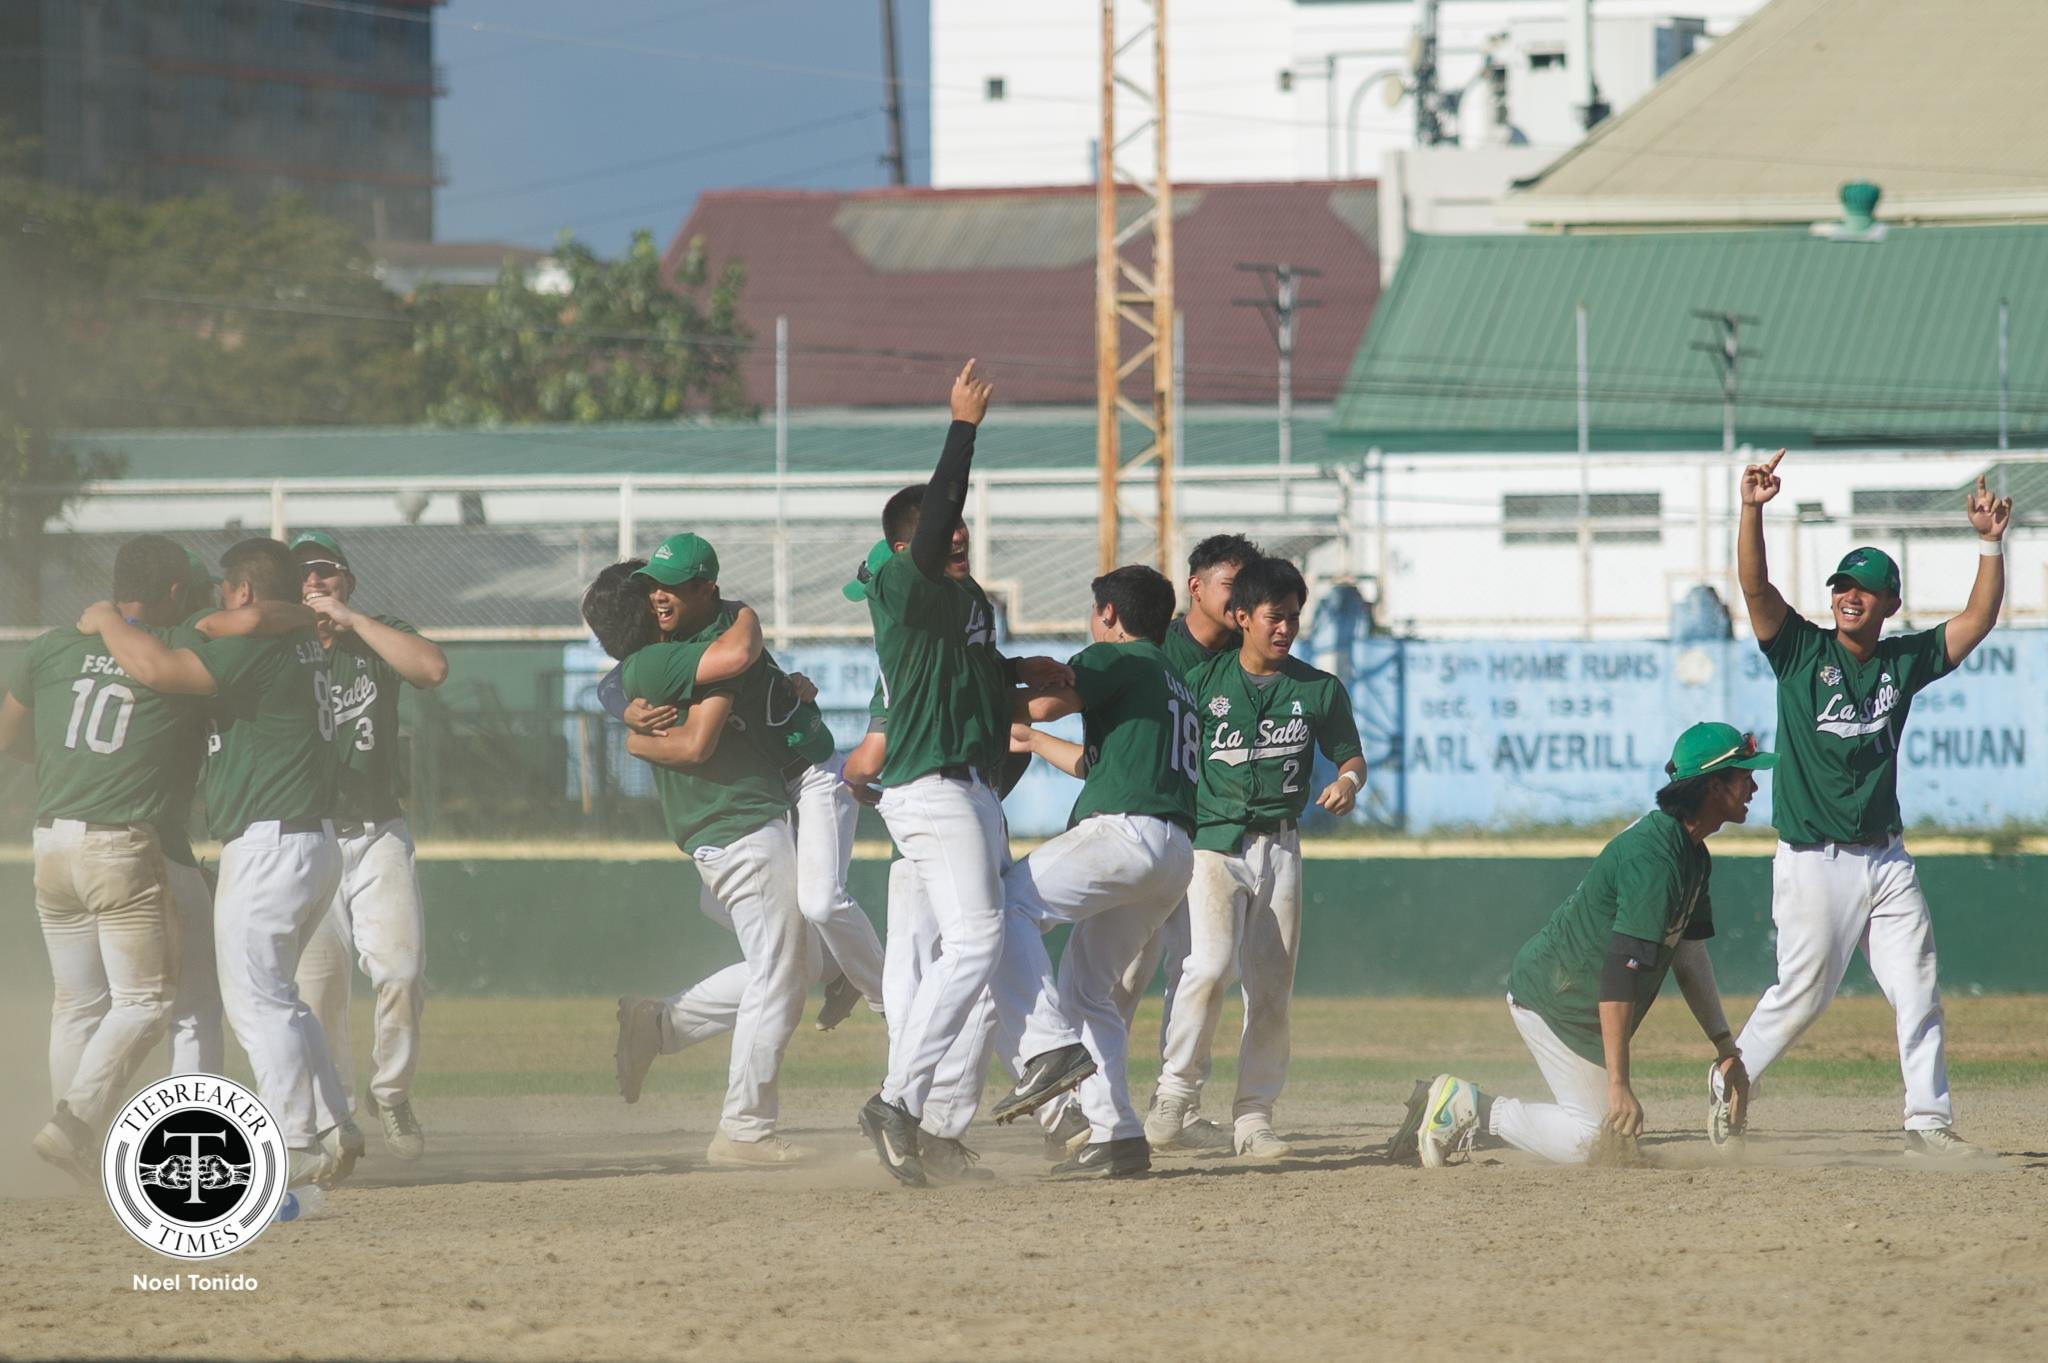 Tiebreaker Times 9th inn Kiko Gesmundo HR pushes La Salle to UAAP Baseball crown ADMU Baseball DLSU News UAAP  UAAP SEASON 81 Baseball UAAP Season 81 Tuwi Park Radito Banzon Paulo Salud Paulo Macasaet Joseph Orillana Joaqui Bilbao DLSU Baseball Dino Altomonte Boo Barandiaran Bocc Bernardo Ateneo Baseball